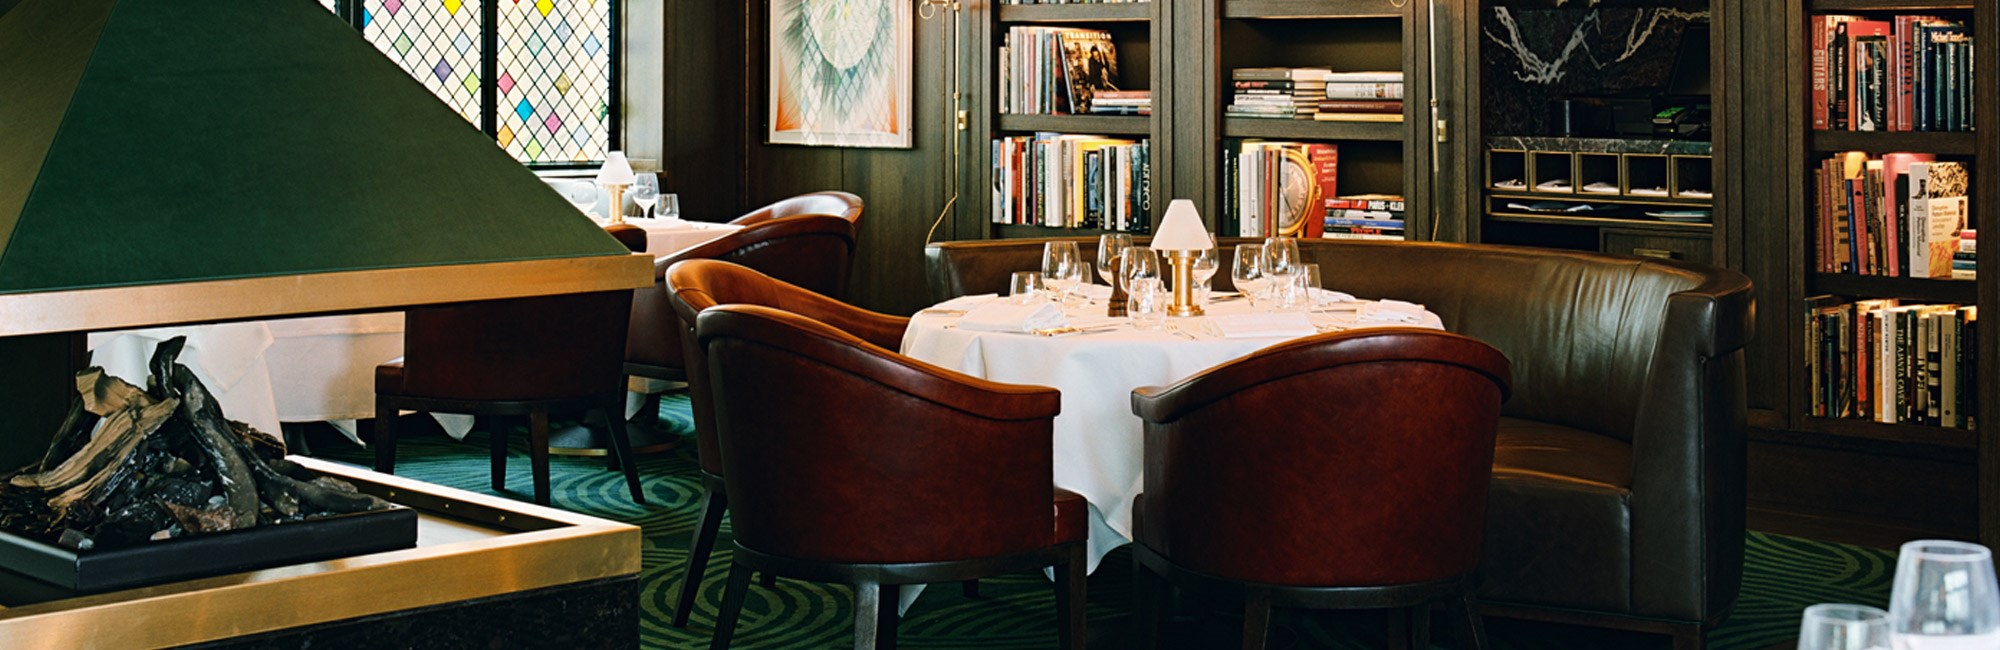 The Ivy Club is a private member's club located in London's Covent Garden